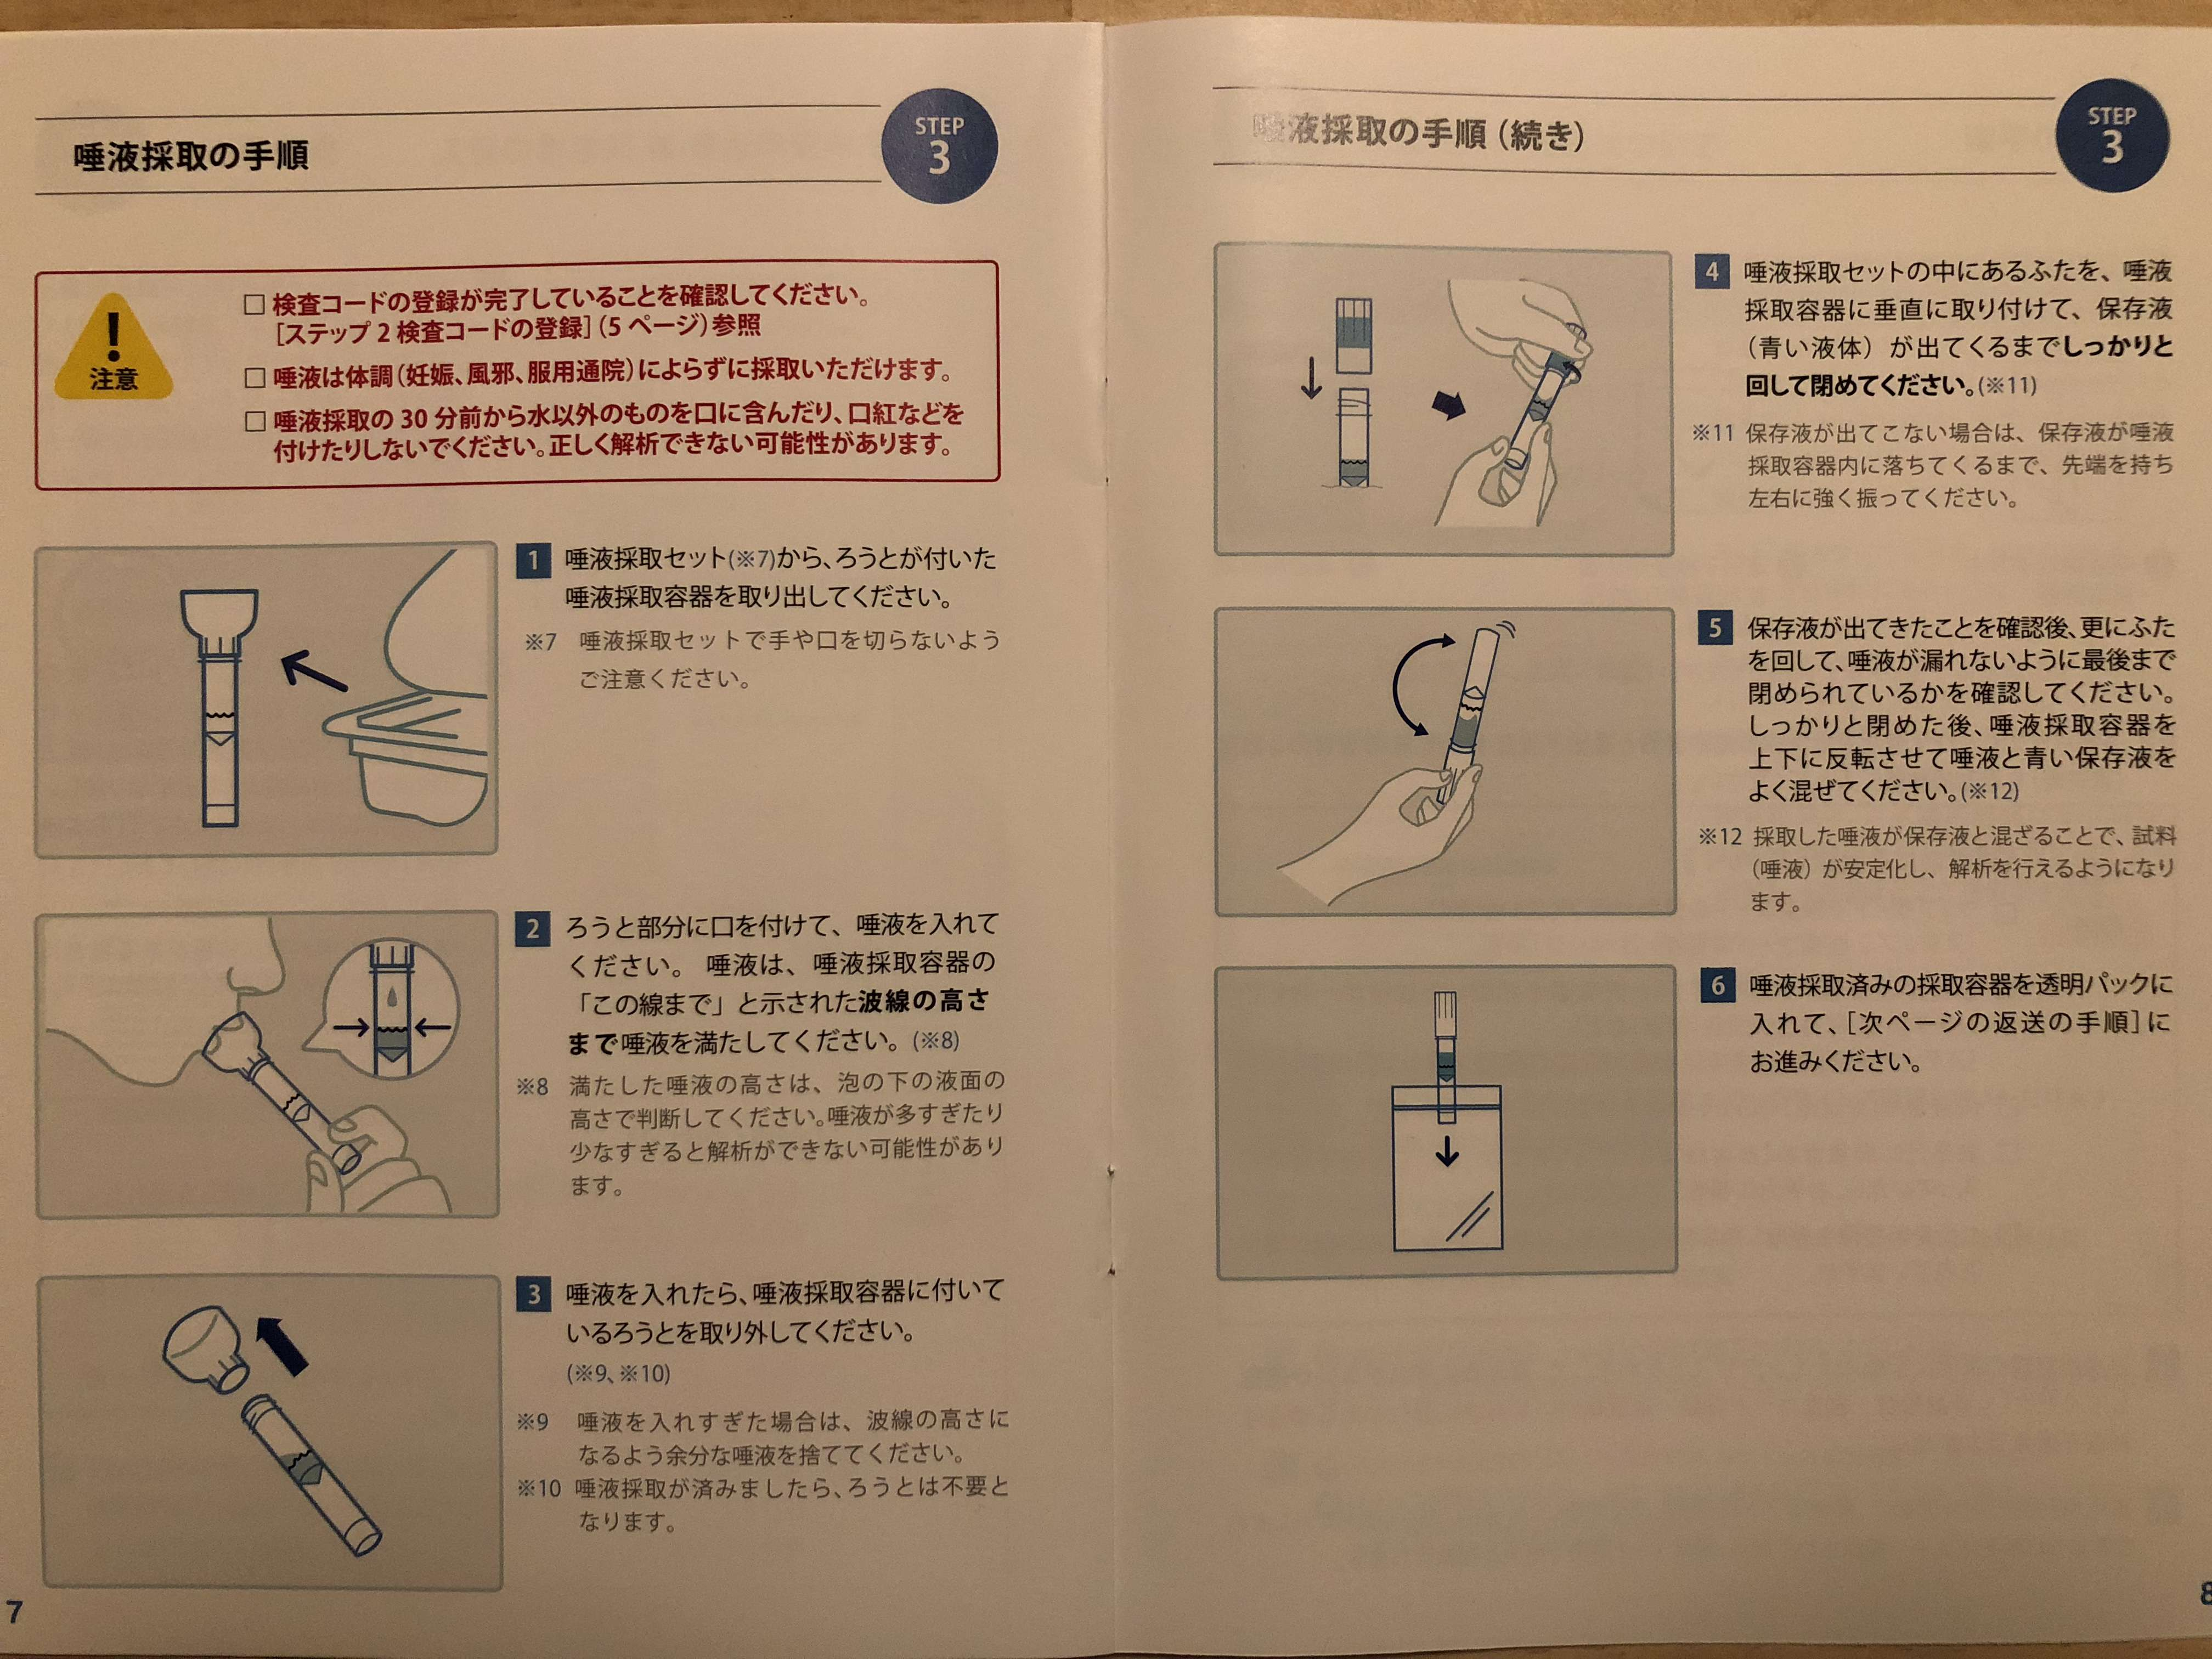 mycode 遺伝子検査 キット ダイエット 費用